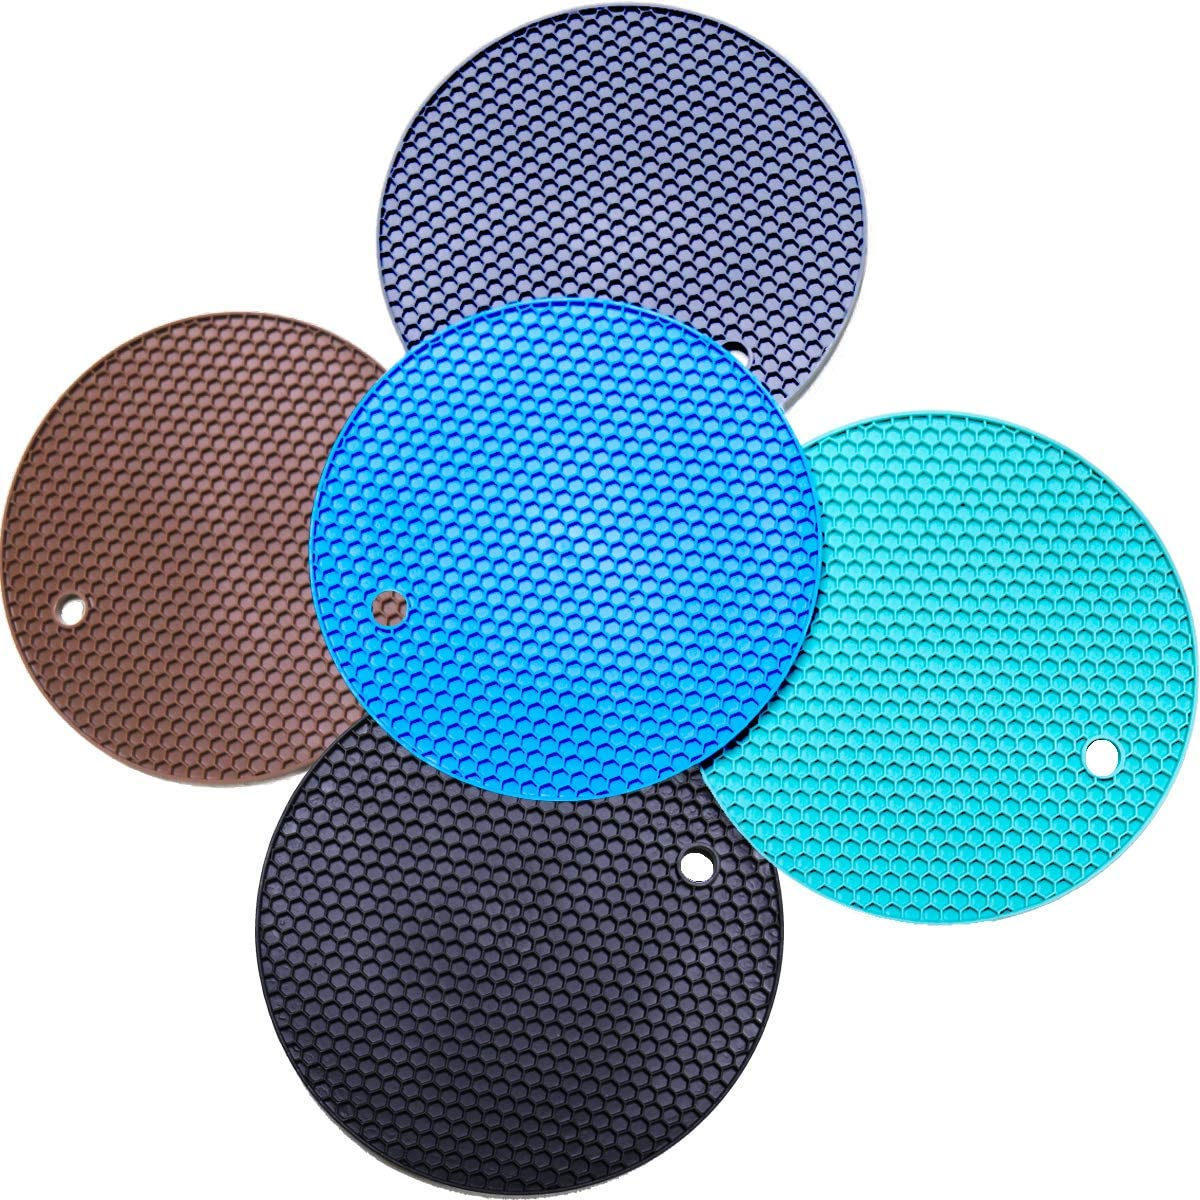 5 Pack Silicone Pot Holder Trivet Mats, Heatproof Trivets for Hot Dishes, Nonslip Insulation Honeycomb Rubber Hot Pads for Countertop, Extra Thick & Flexible Mats Heat Resistant Trivets (Multicolor)